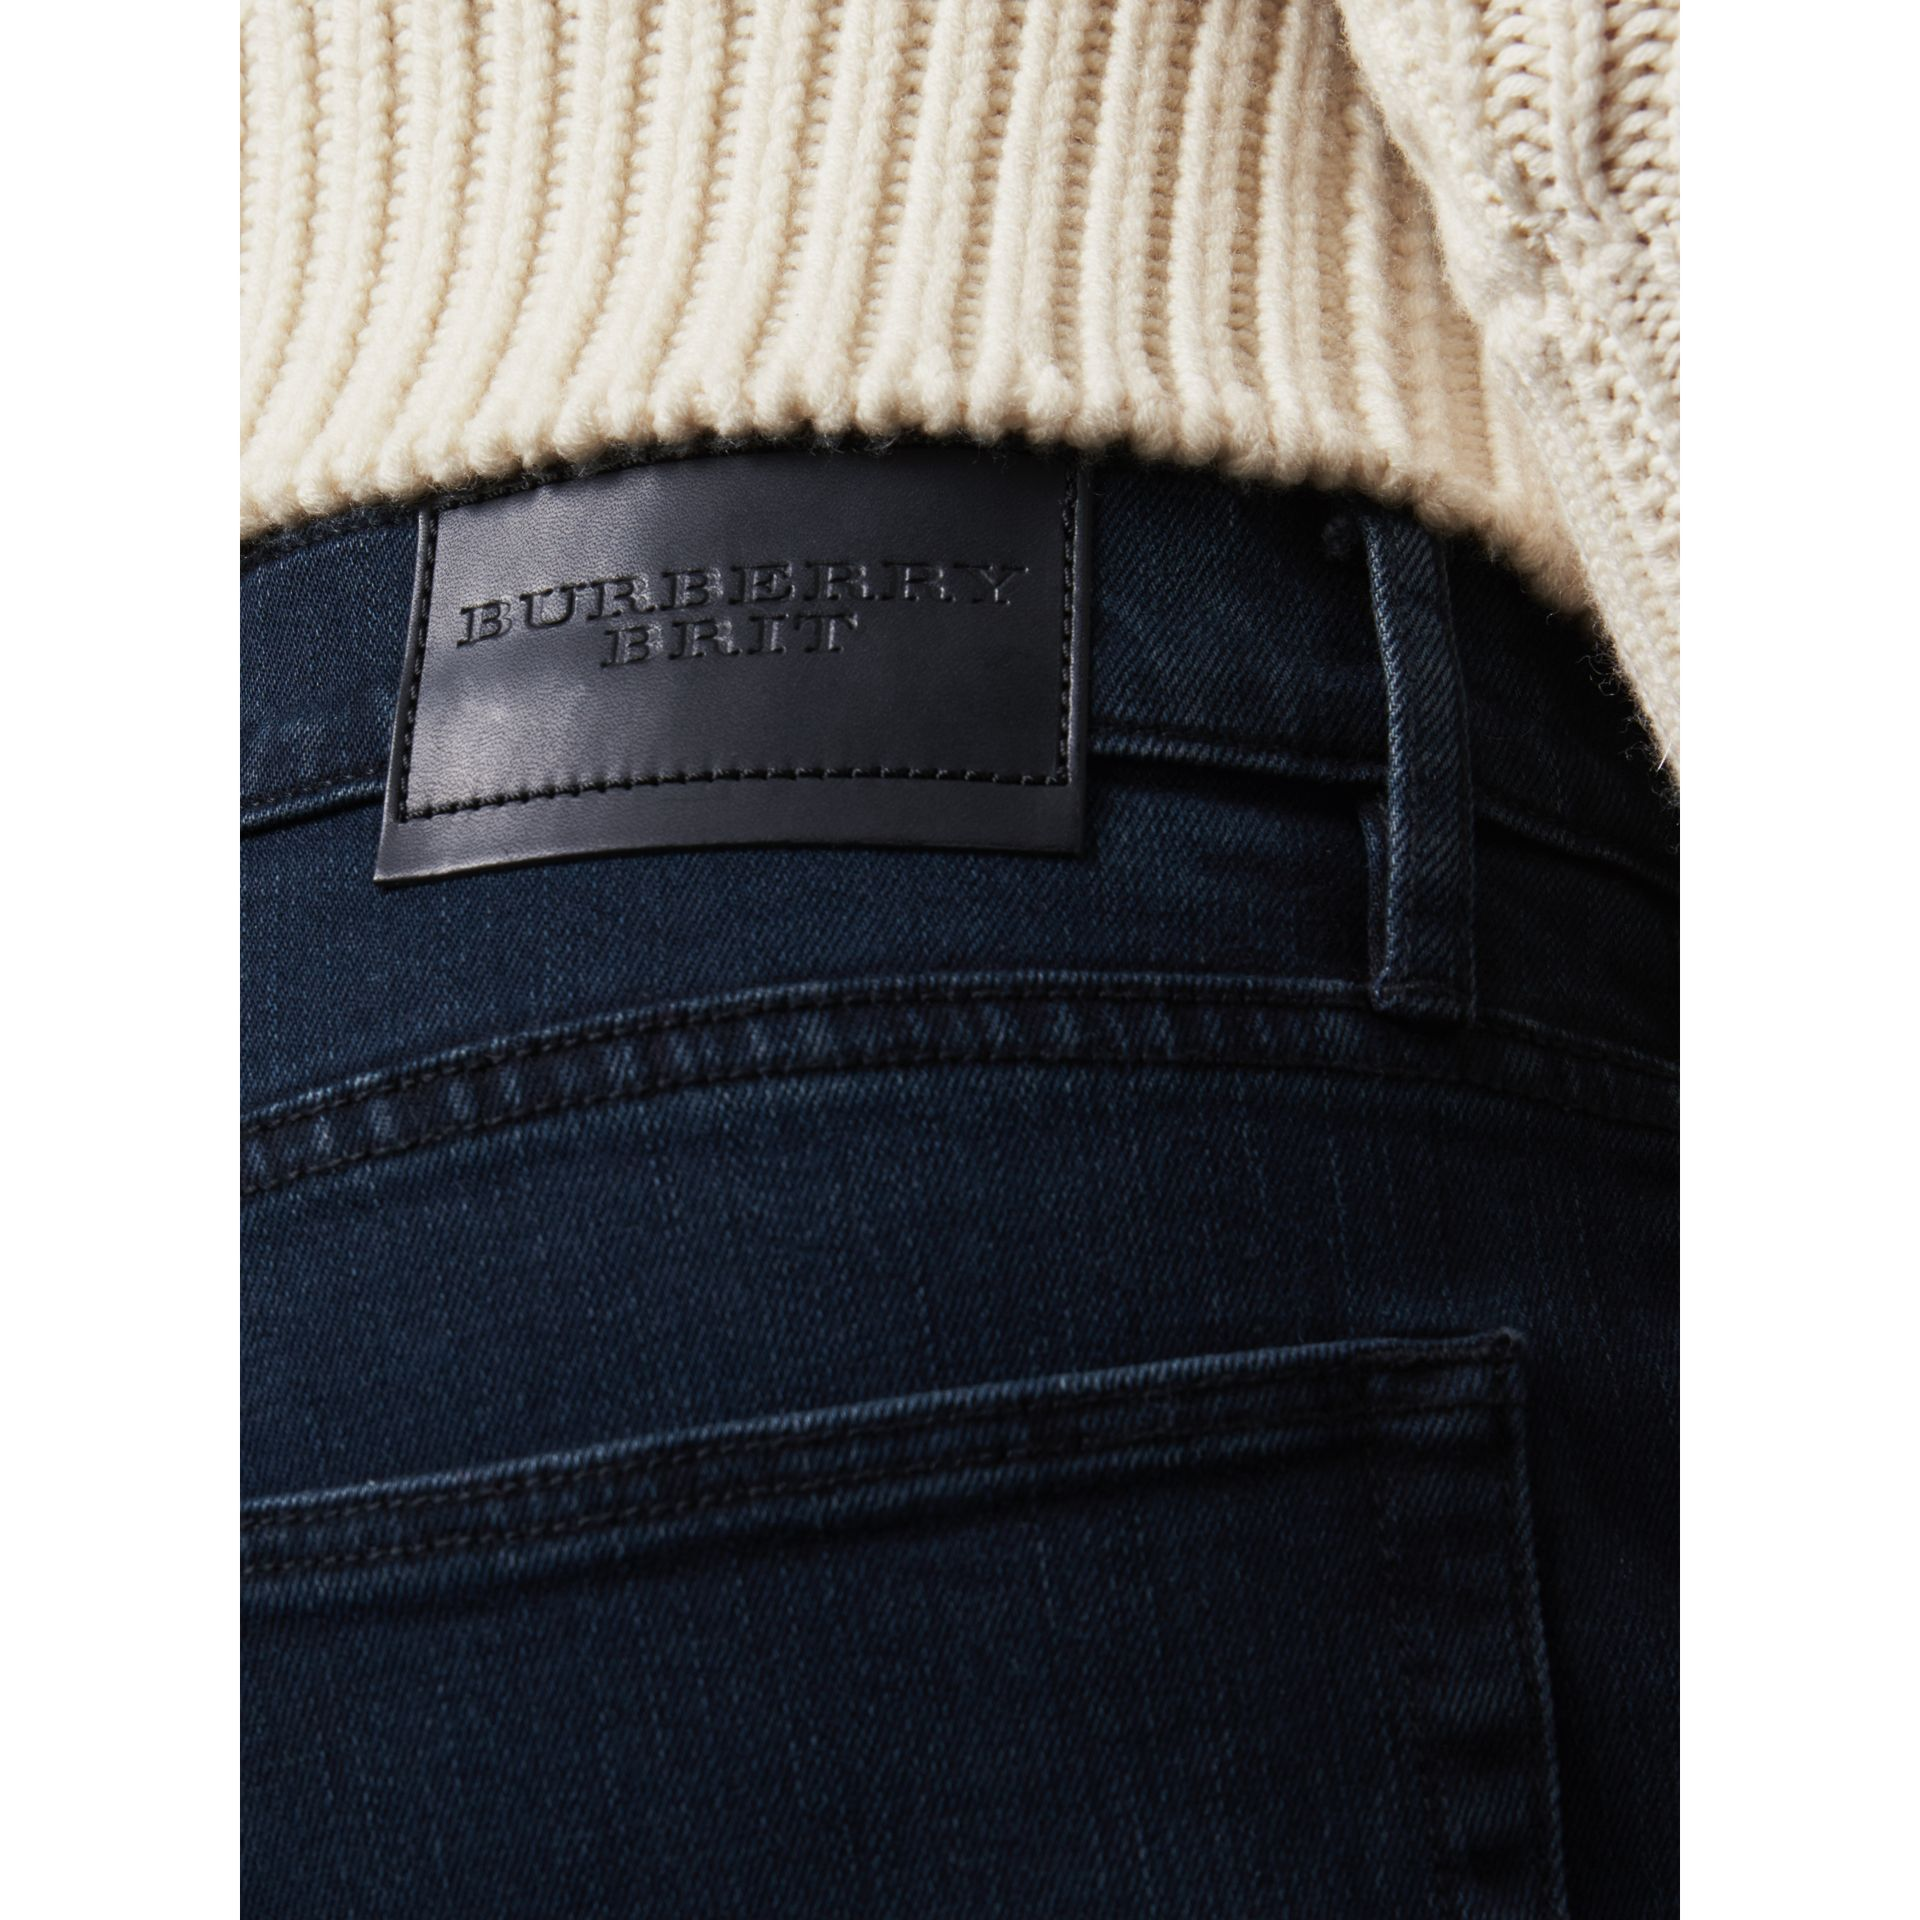 Straight Fit Indigo Stretch Jeans in Dark - Men | Burberry United Kingdom - gallery image 1